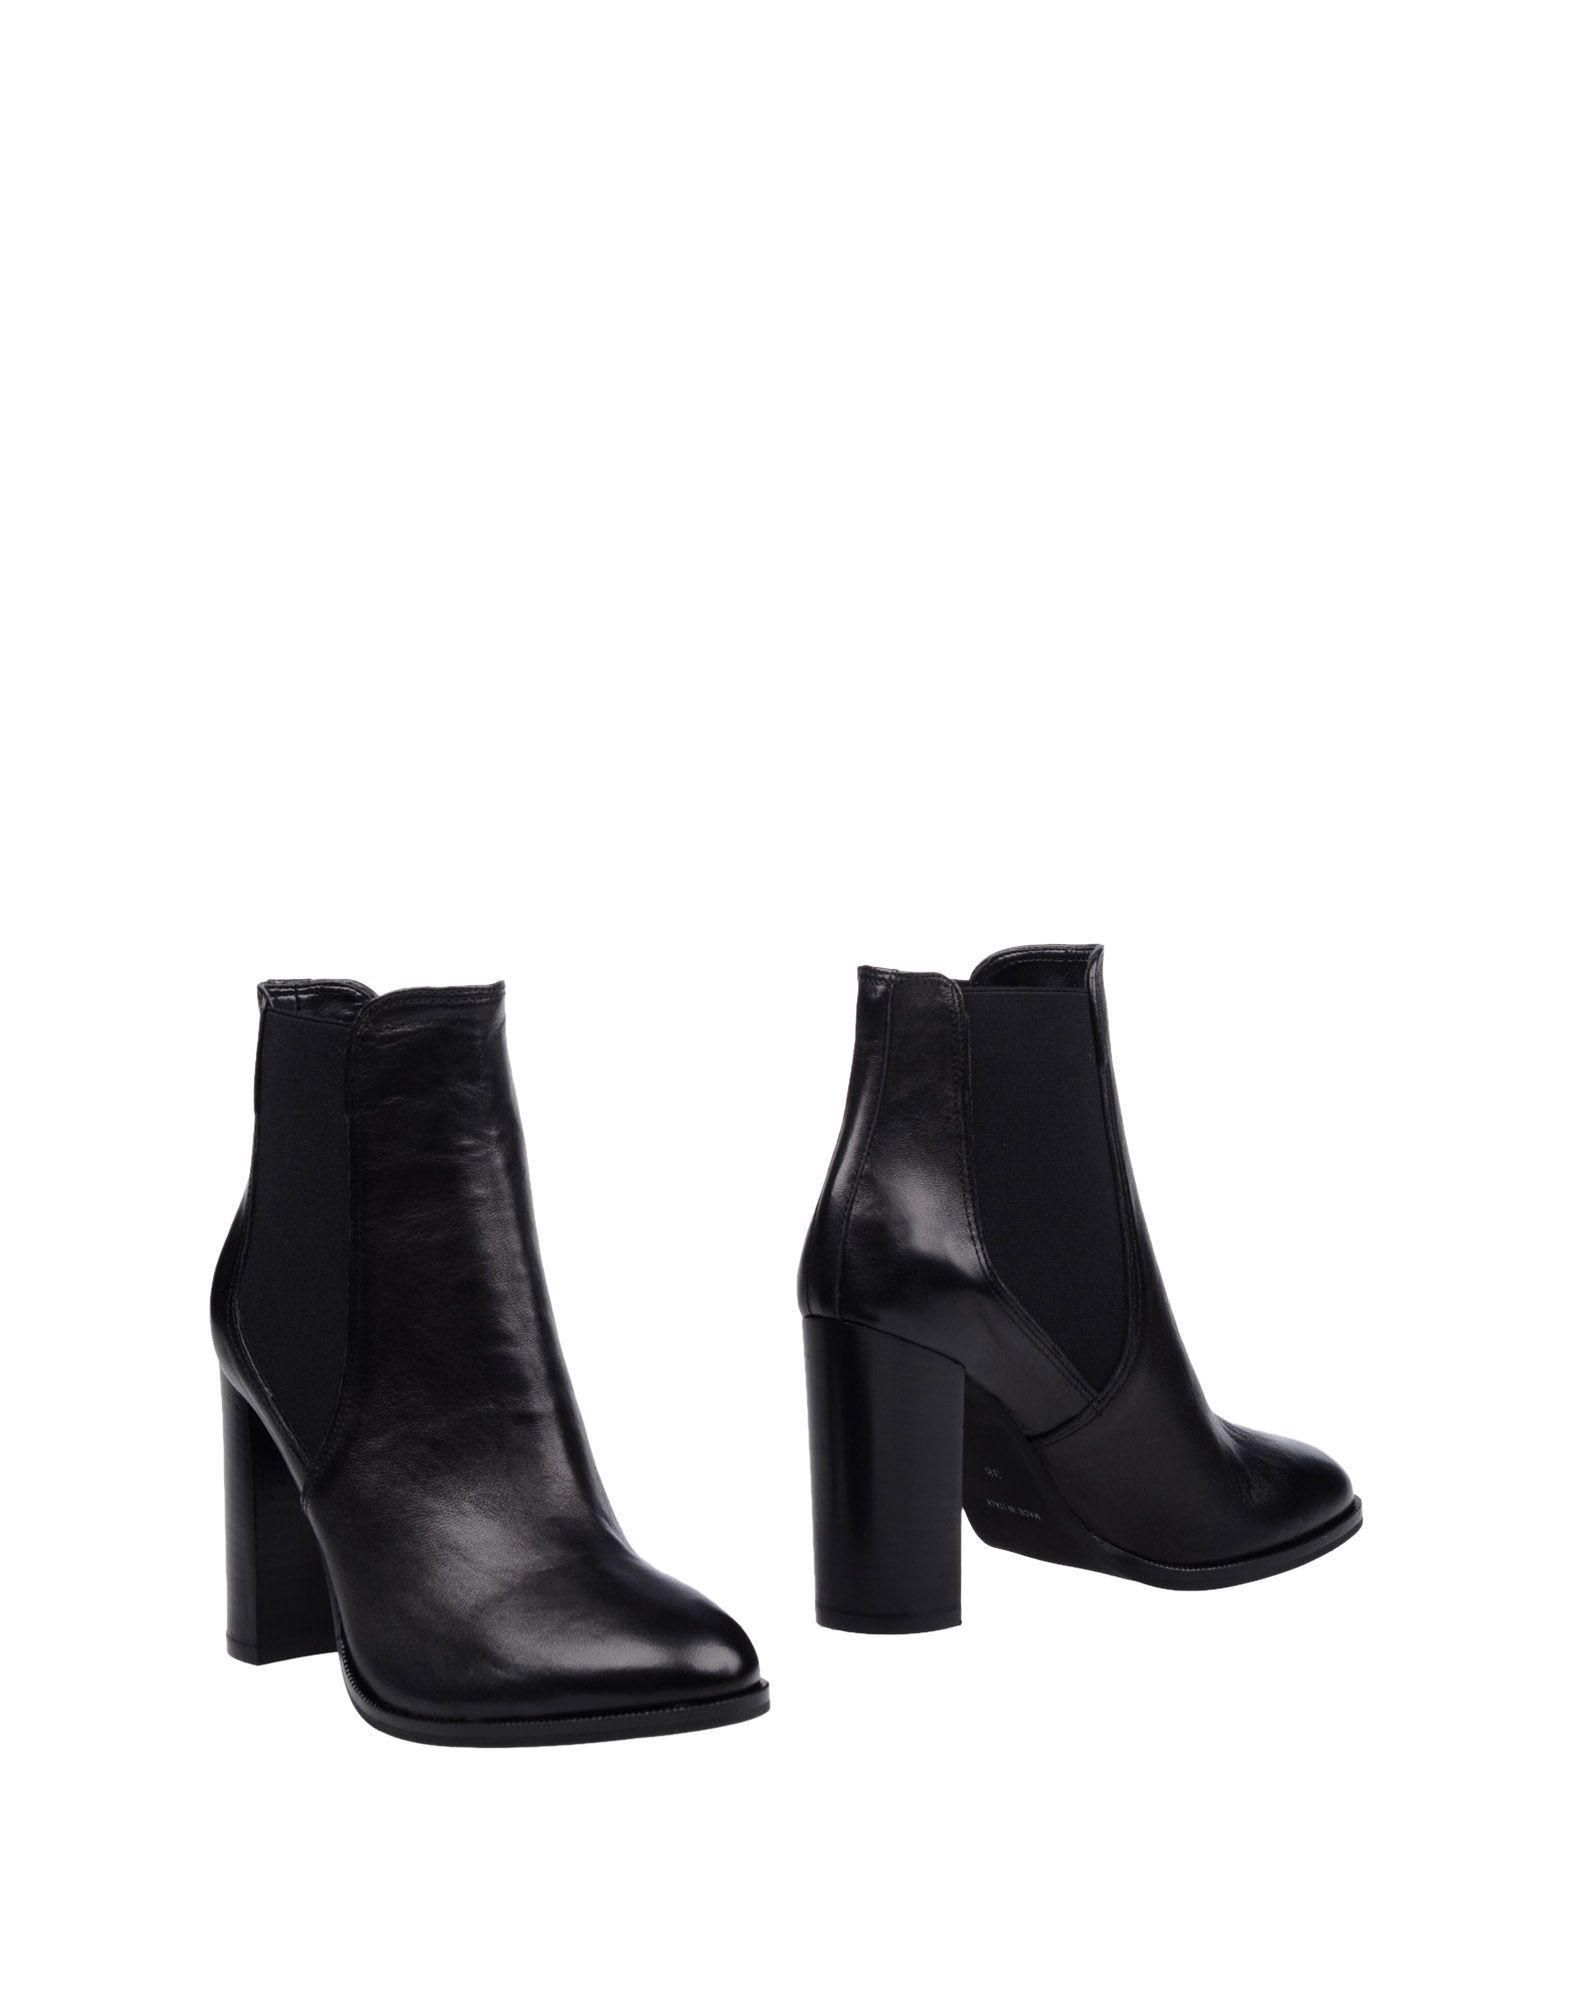 Bagatt Black Leather Ankle Boots